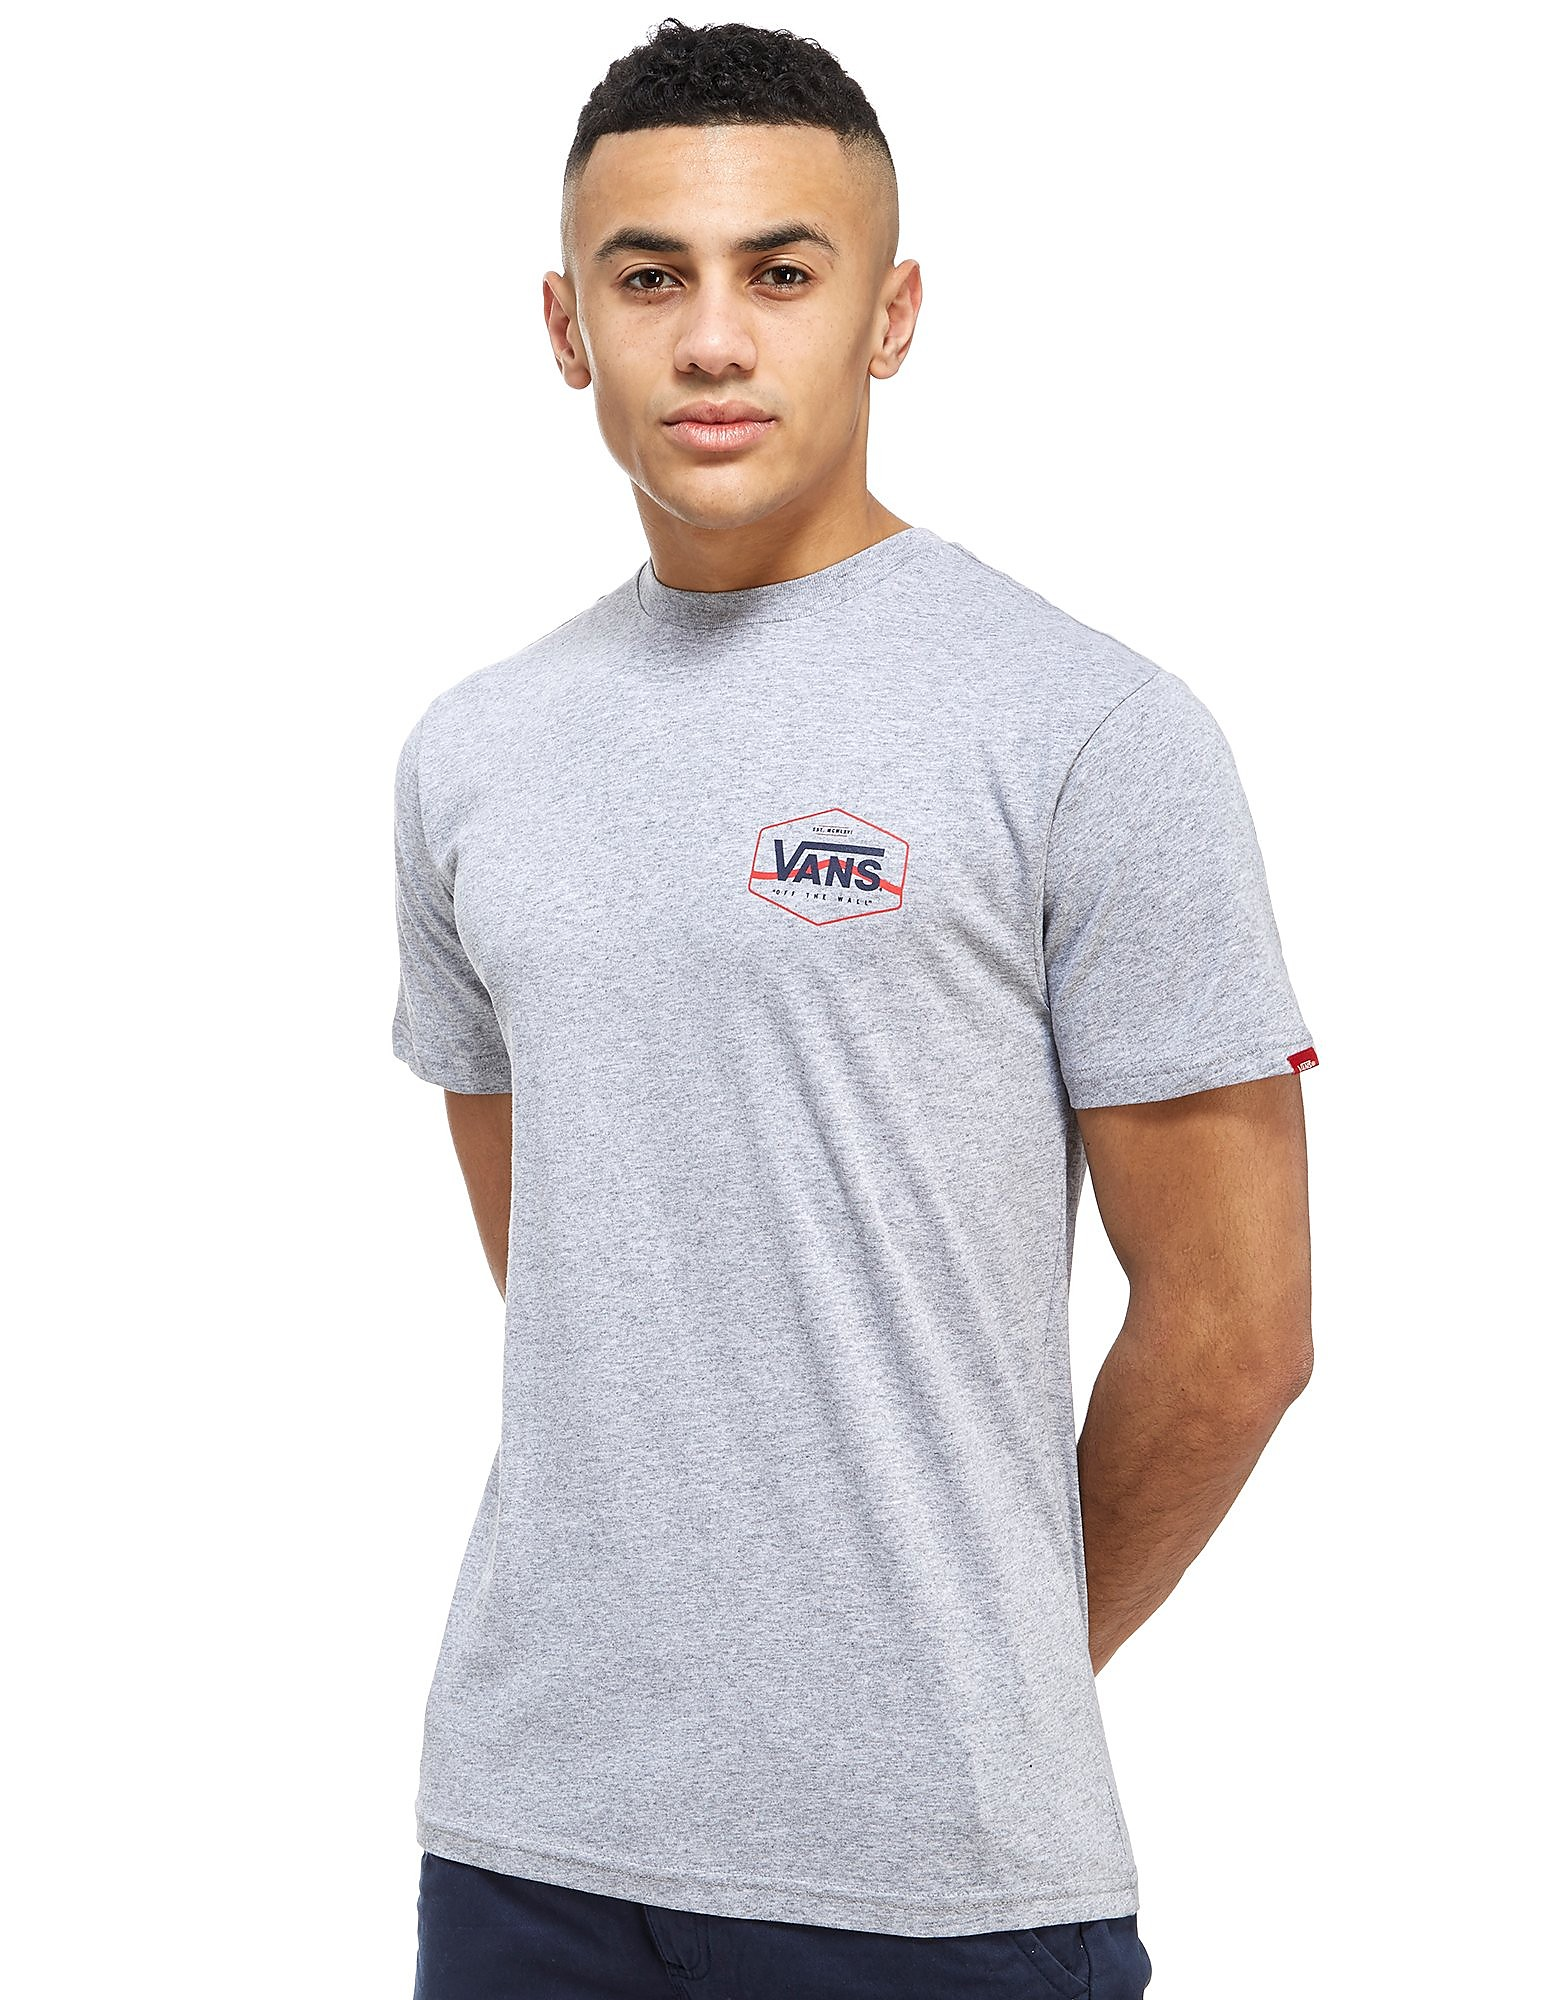 Vans Side Stripe Back Print T-Shirt